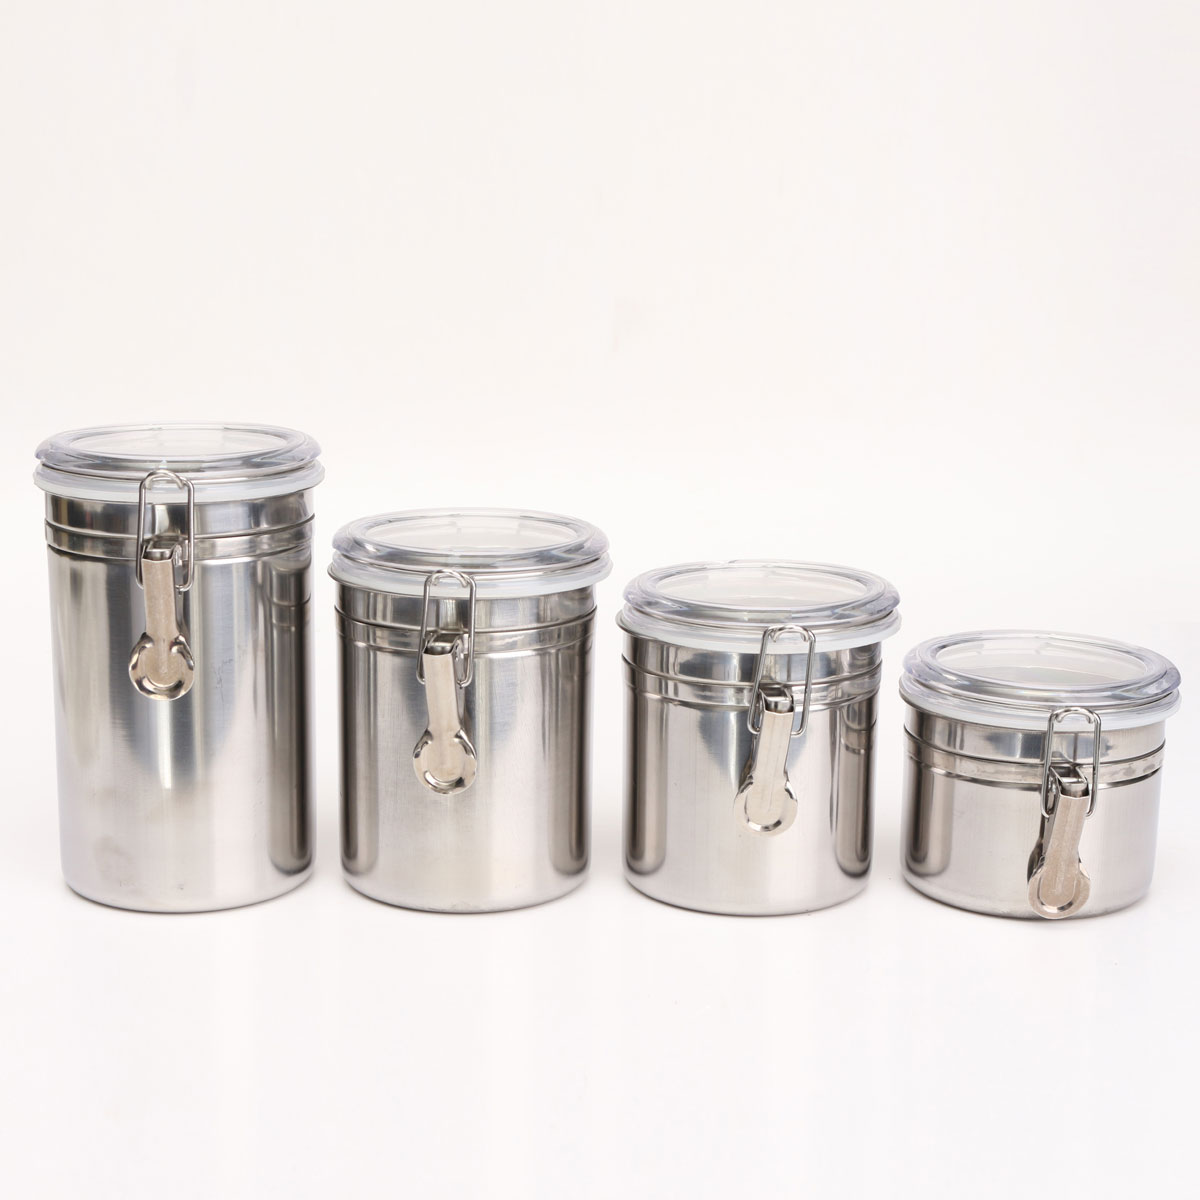 Stainless steel storage containers for kitchen - Kitchen Container Boxes 4 Size Metal Storage Food Bottles Sugar Tea Coffee Beans Canisters Snack Cans Tools In Storage Boxes Bins From Home Garden On